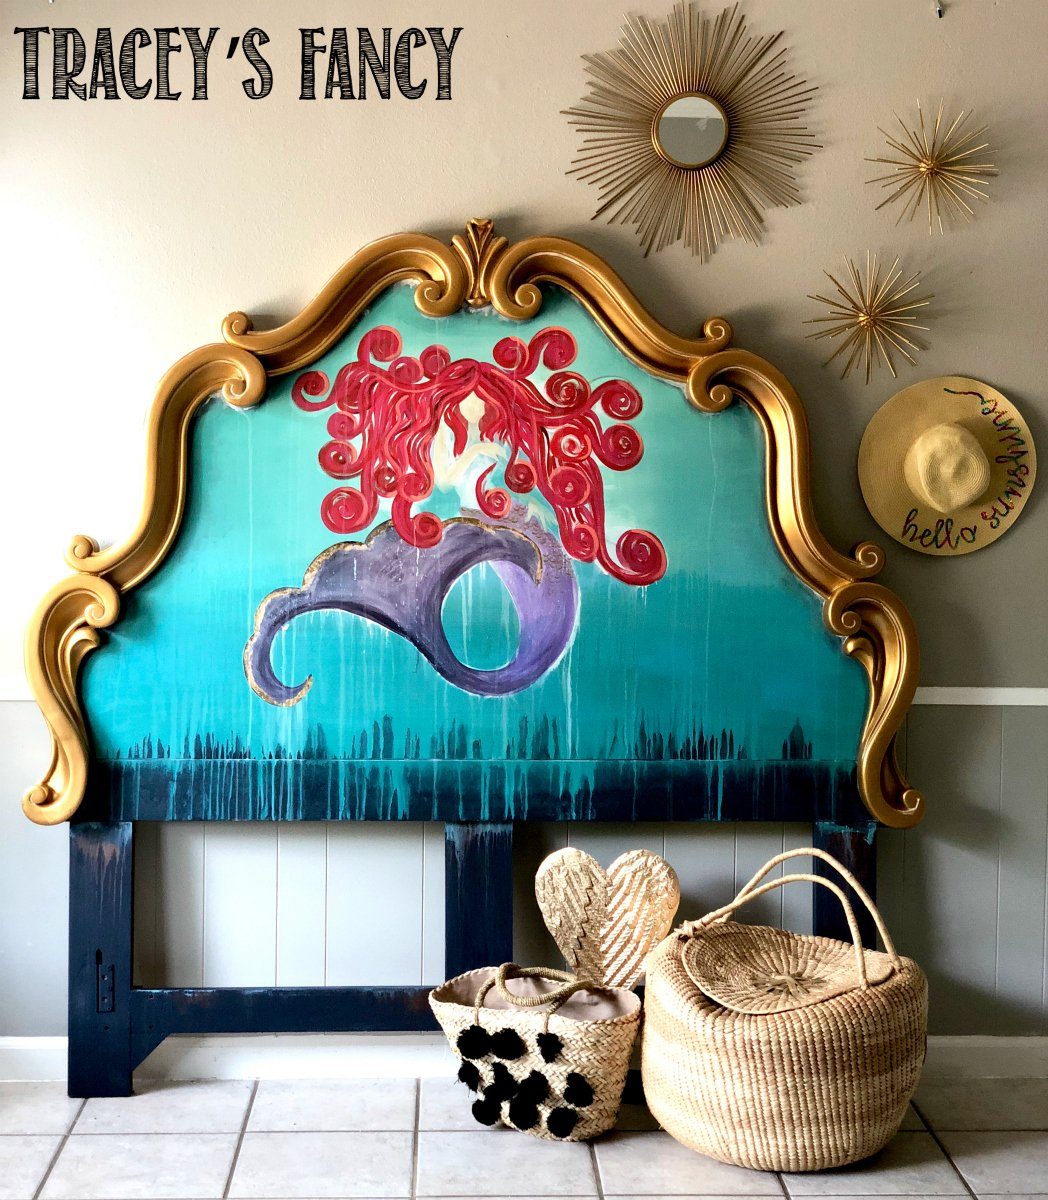 Whimsical Painted Mermaid Headboard by Tracey's Fancy